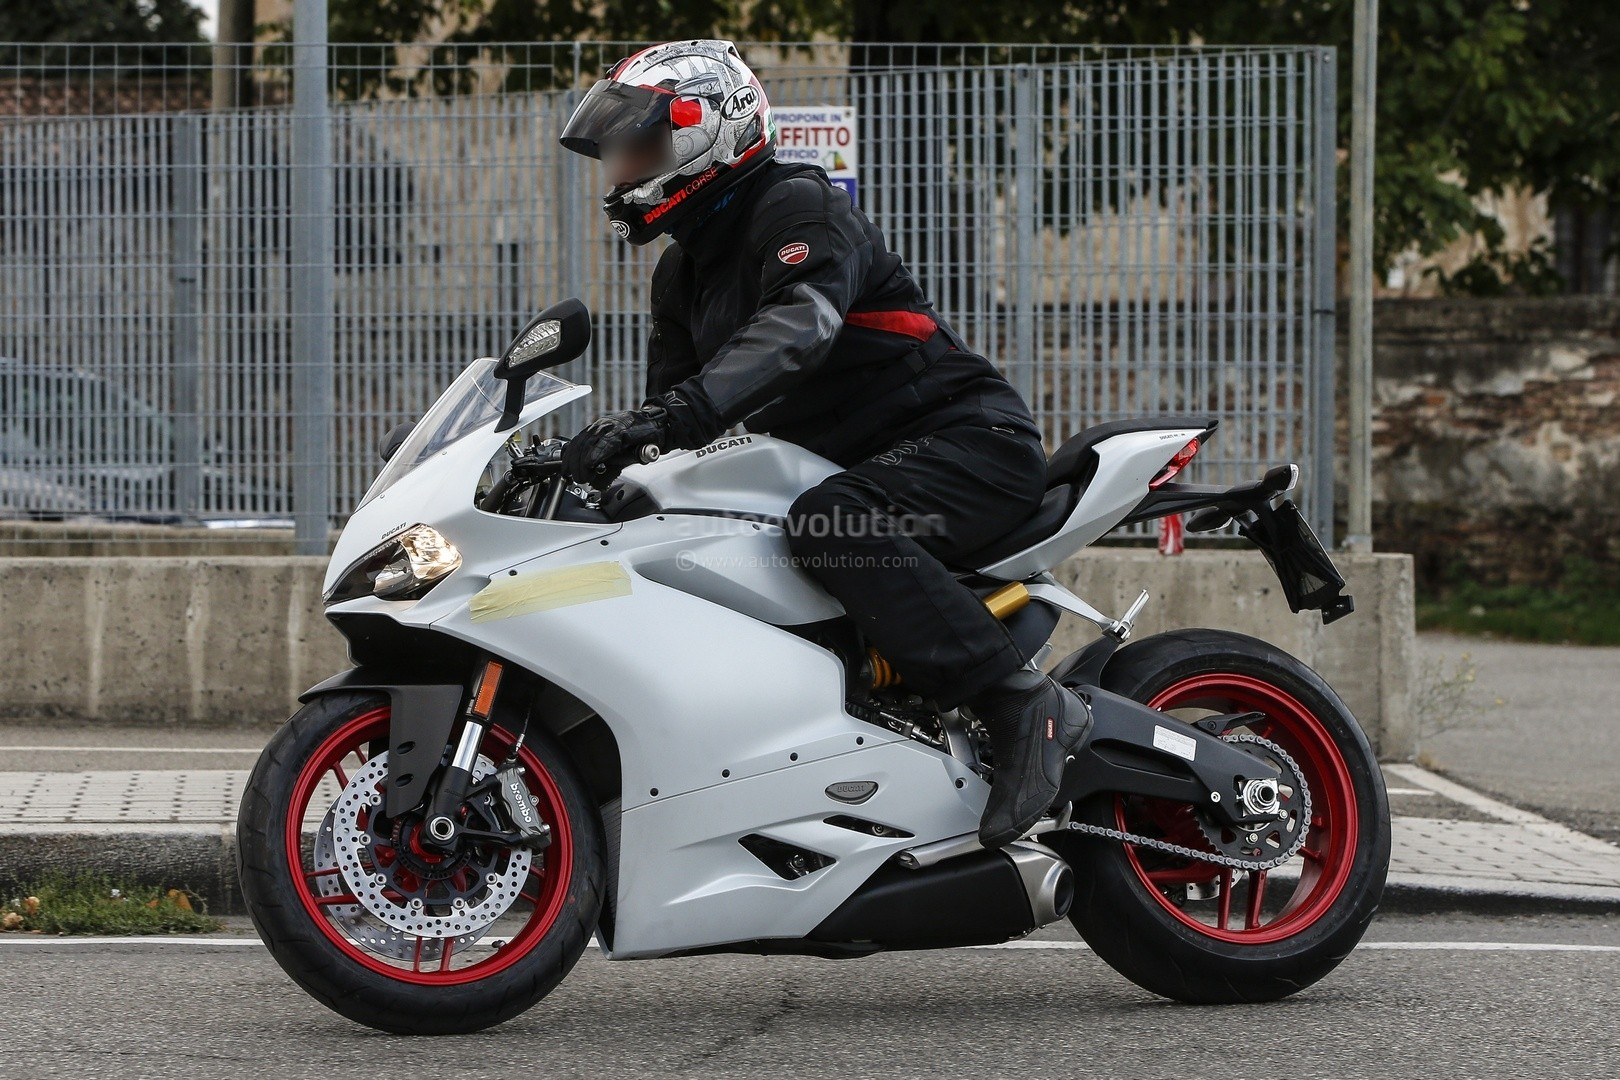 meet the ducati 959 panigale in the flesh - autoevolution